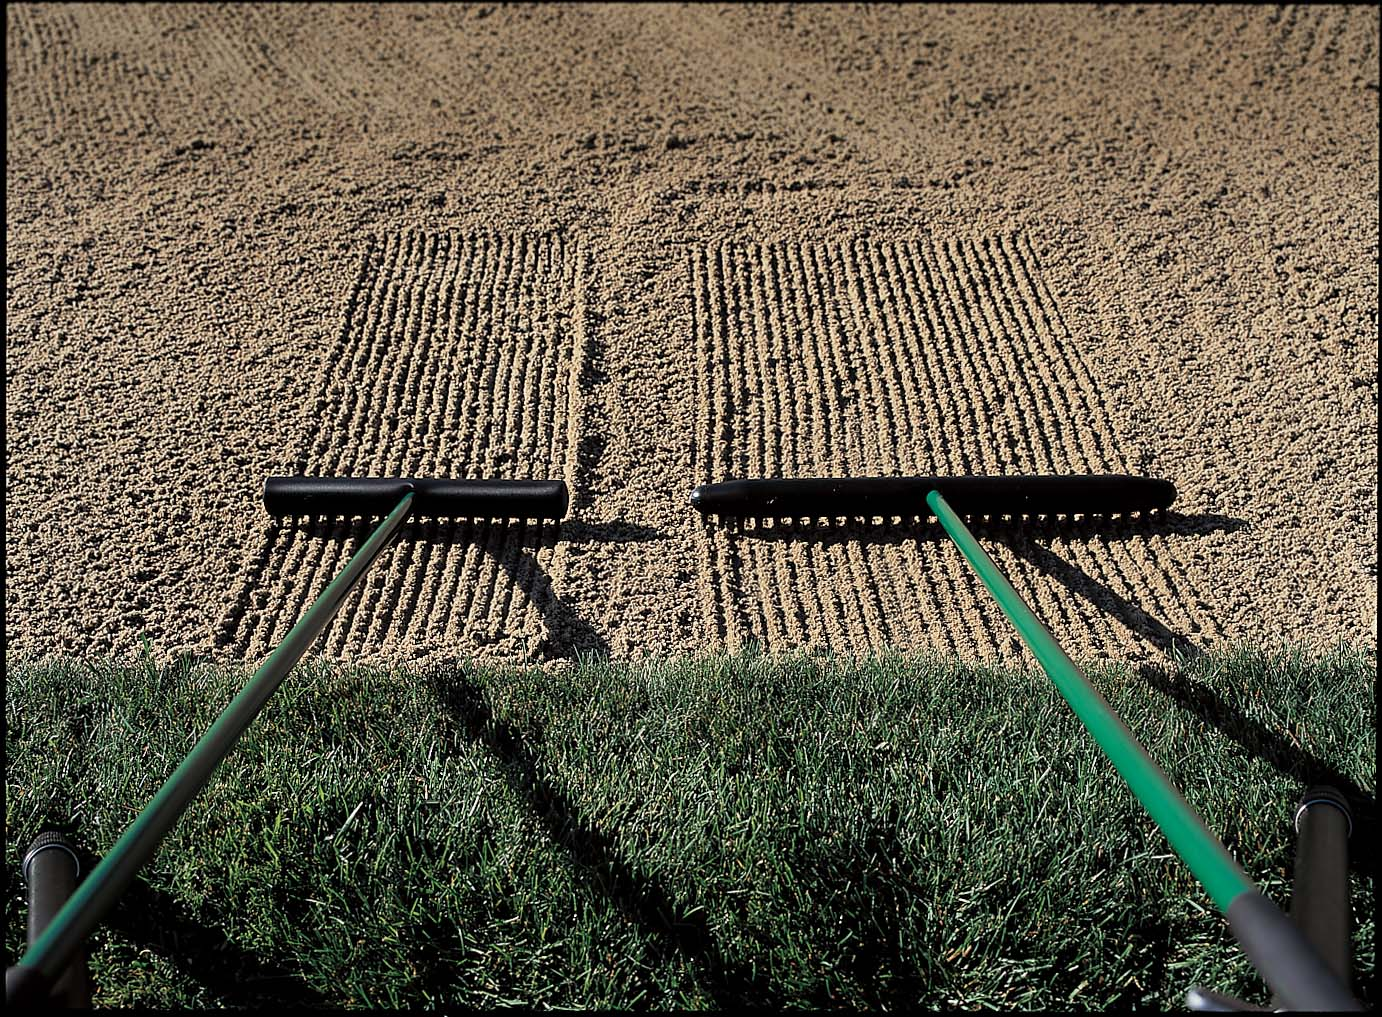 Accuform Ace II Bunker Rakes